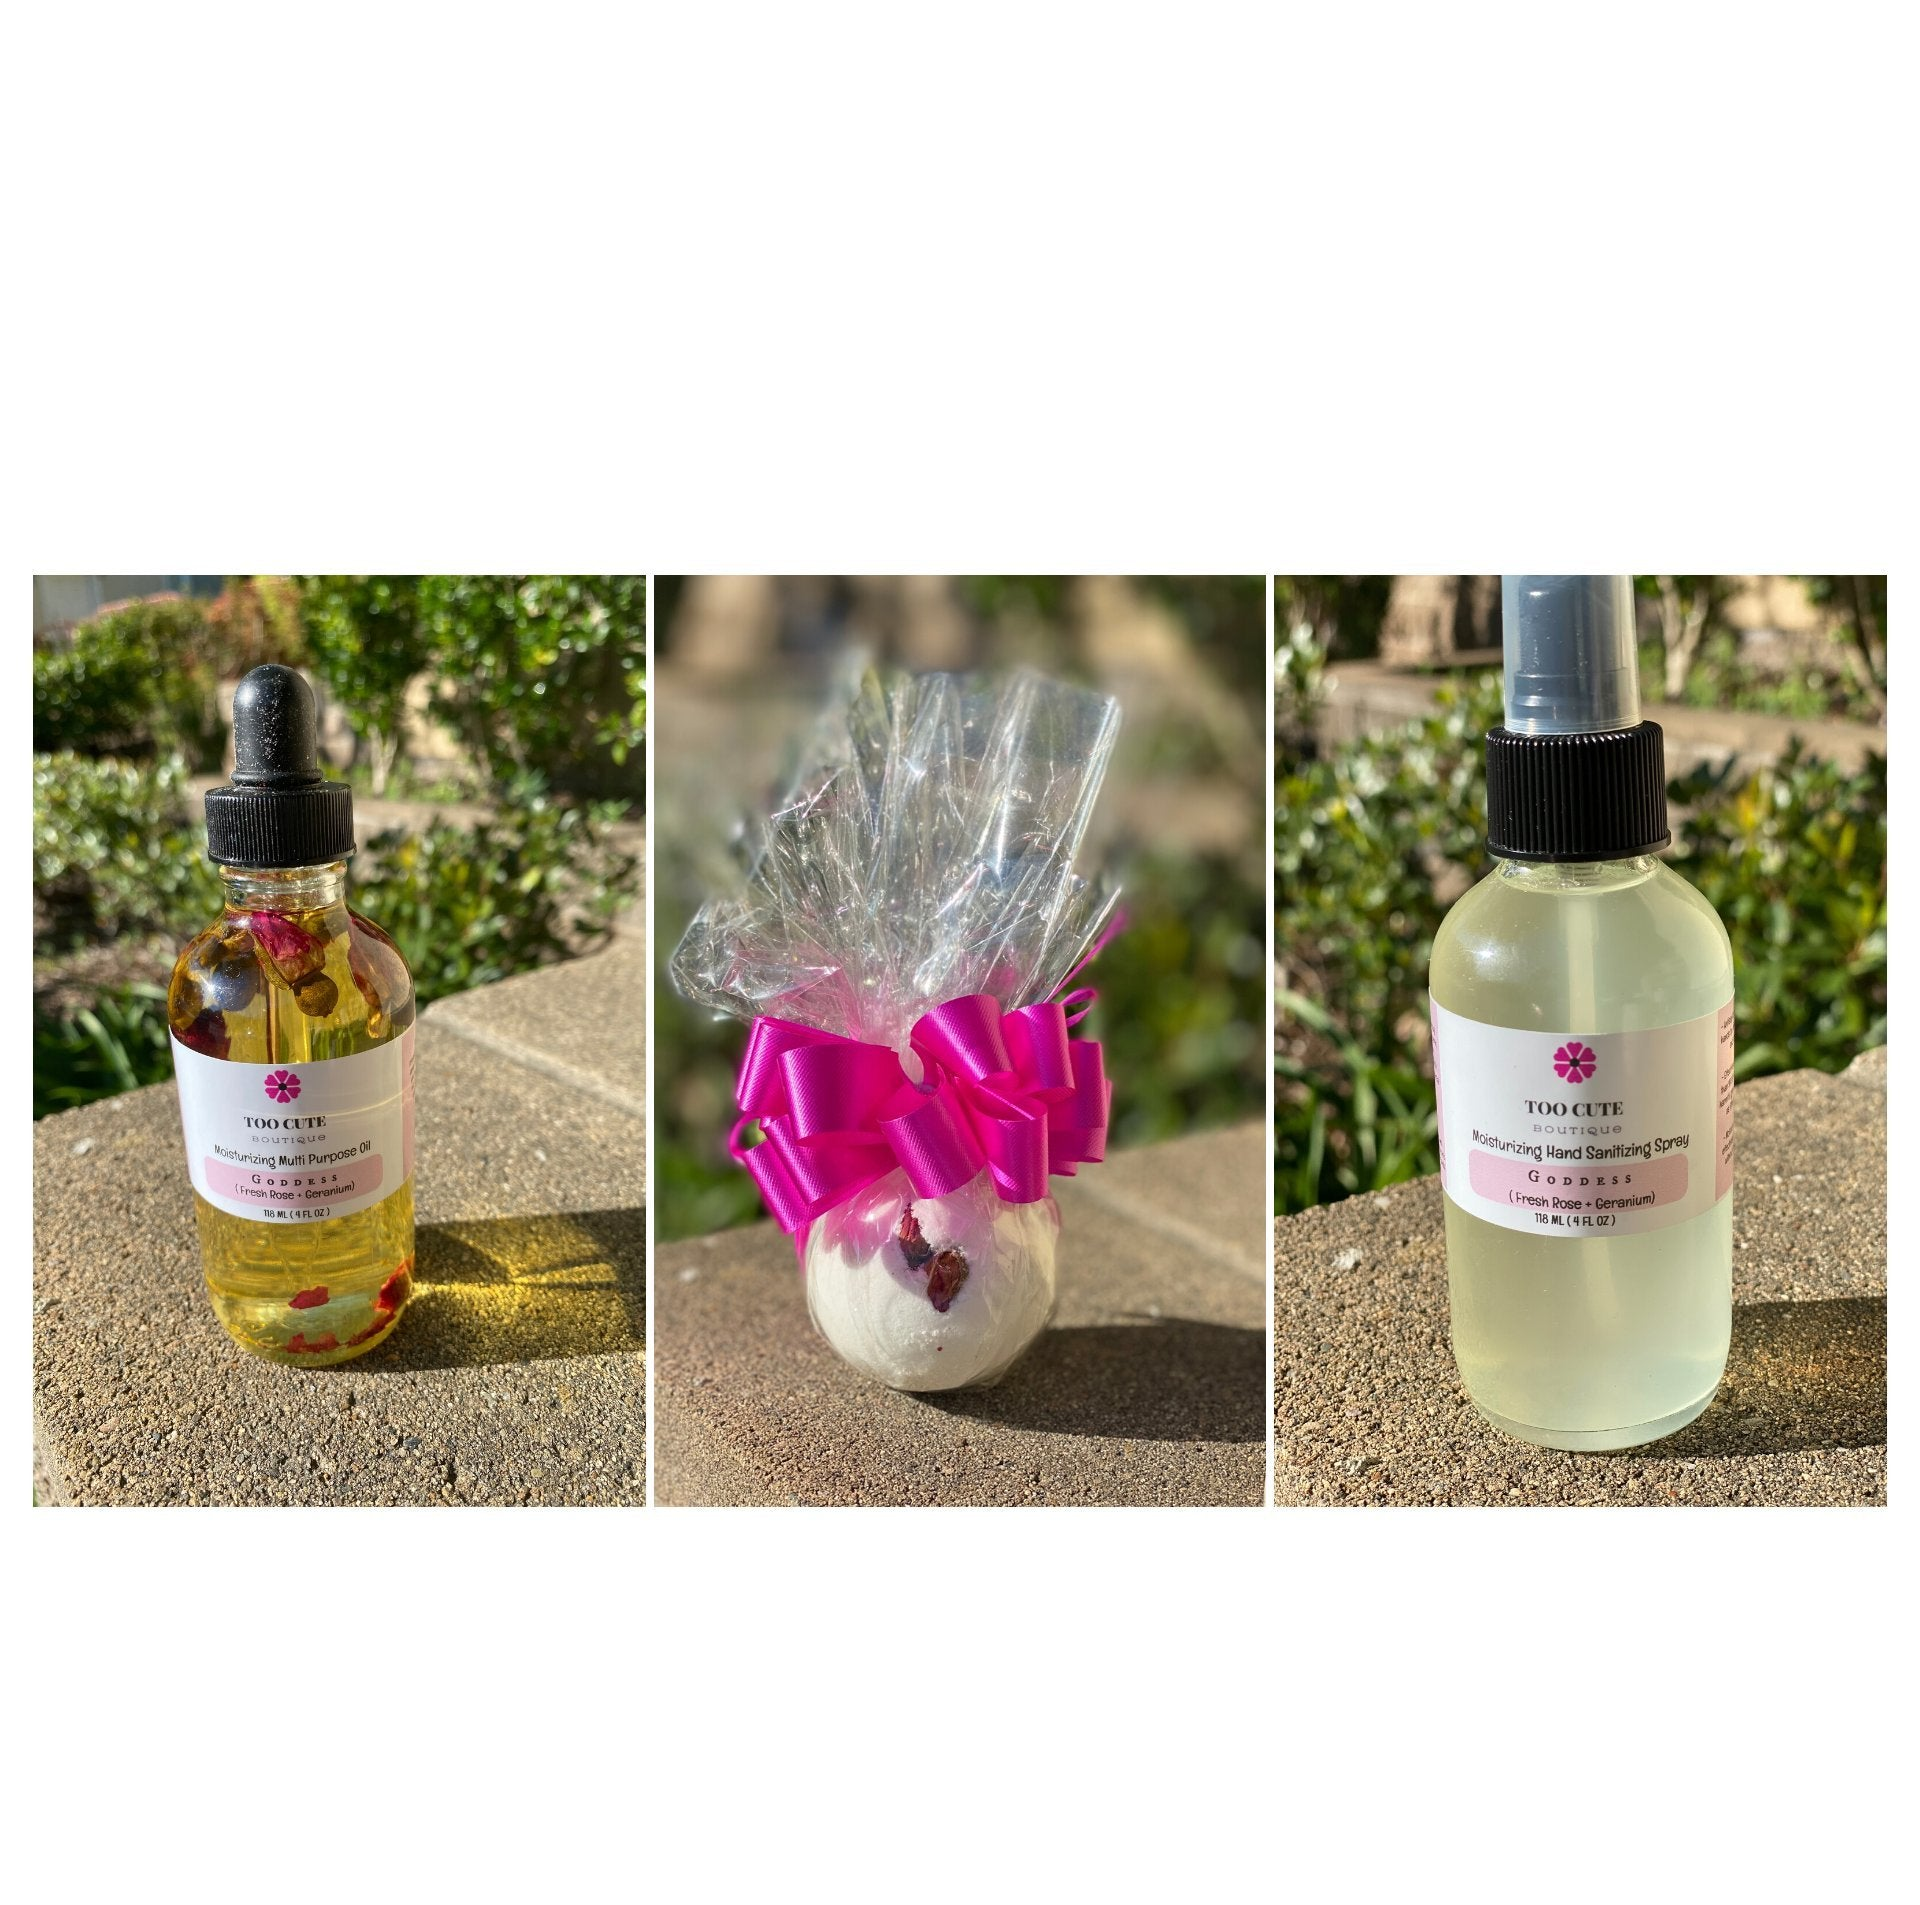 hand sanitizers, body oils, essential oils, bath bombs